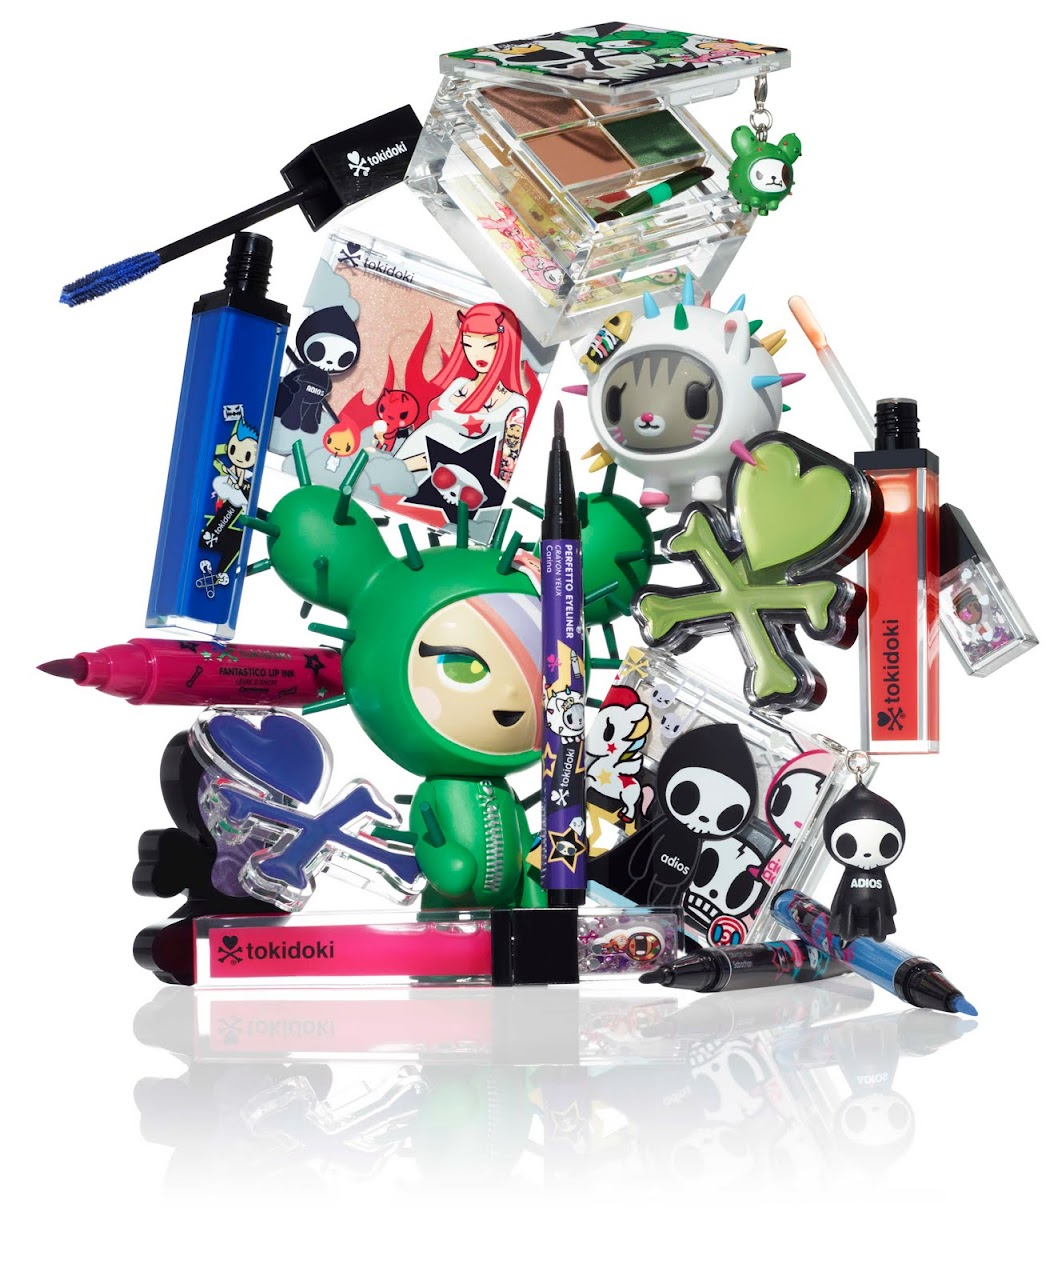 Tokidoki at Sephora